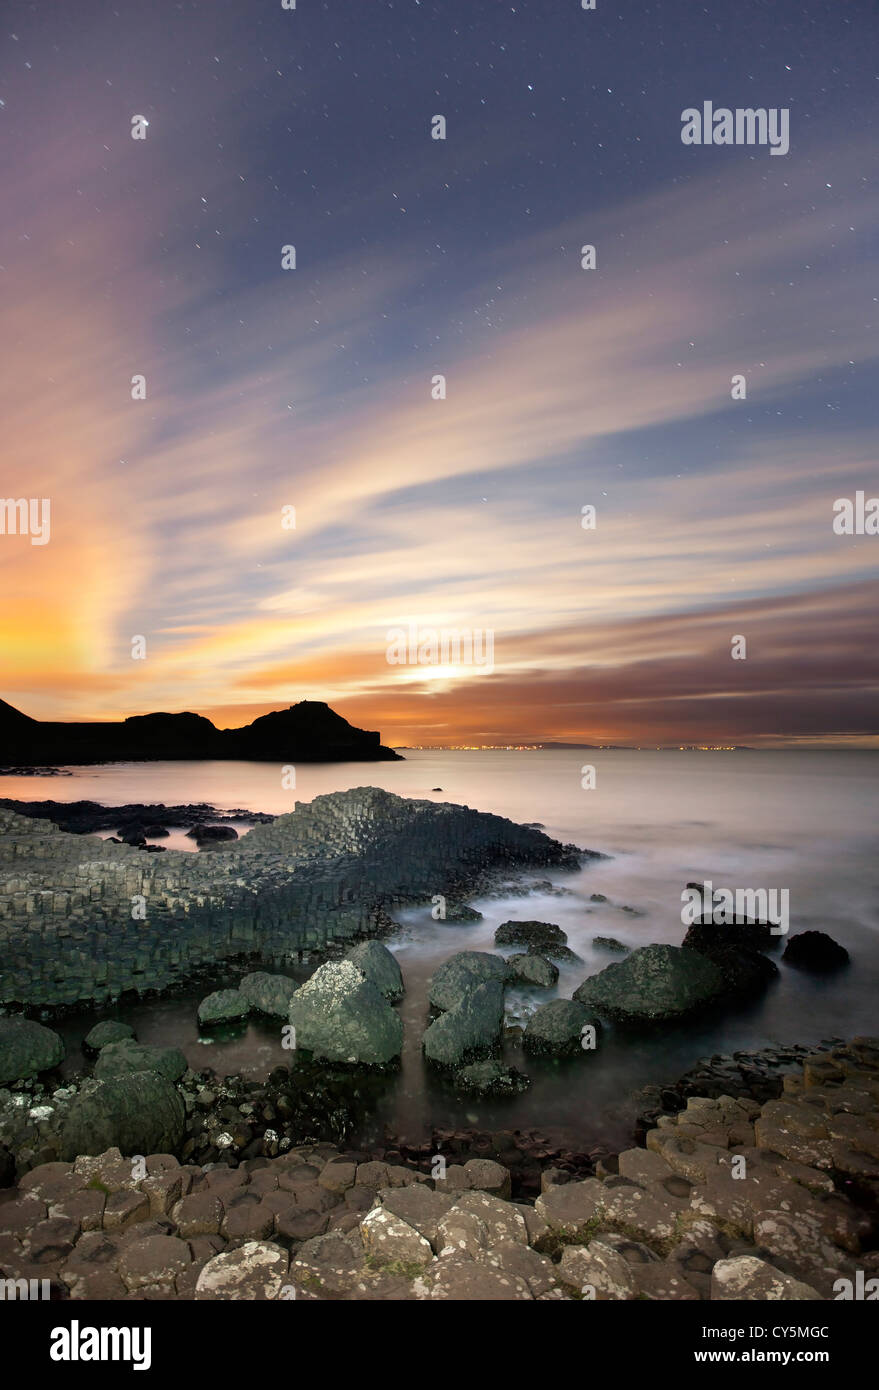 The Giants Causeway at night - Stock Image